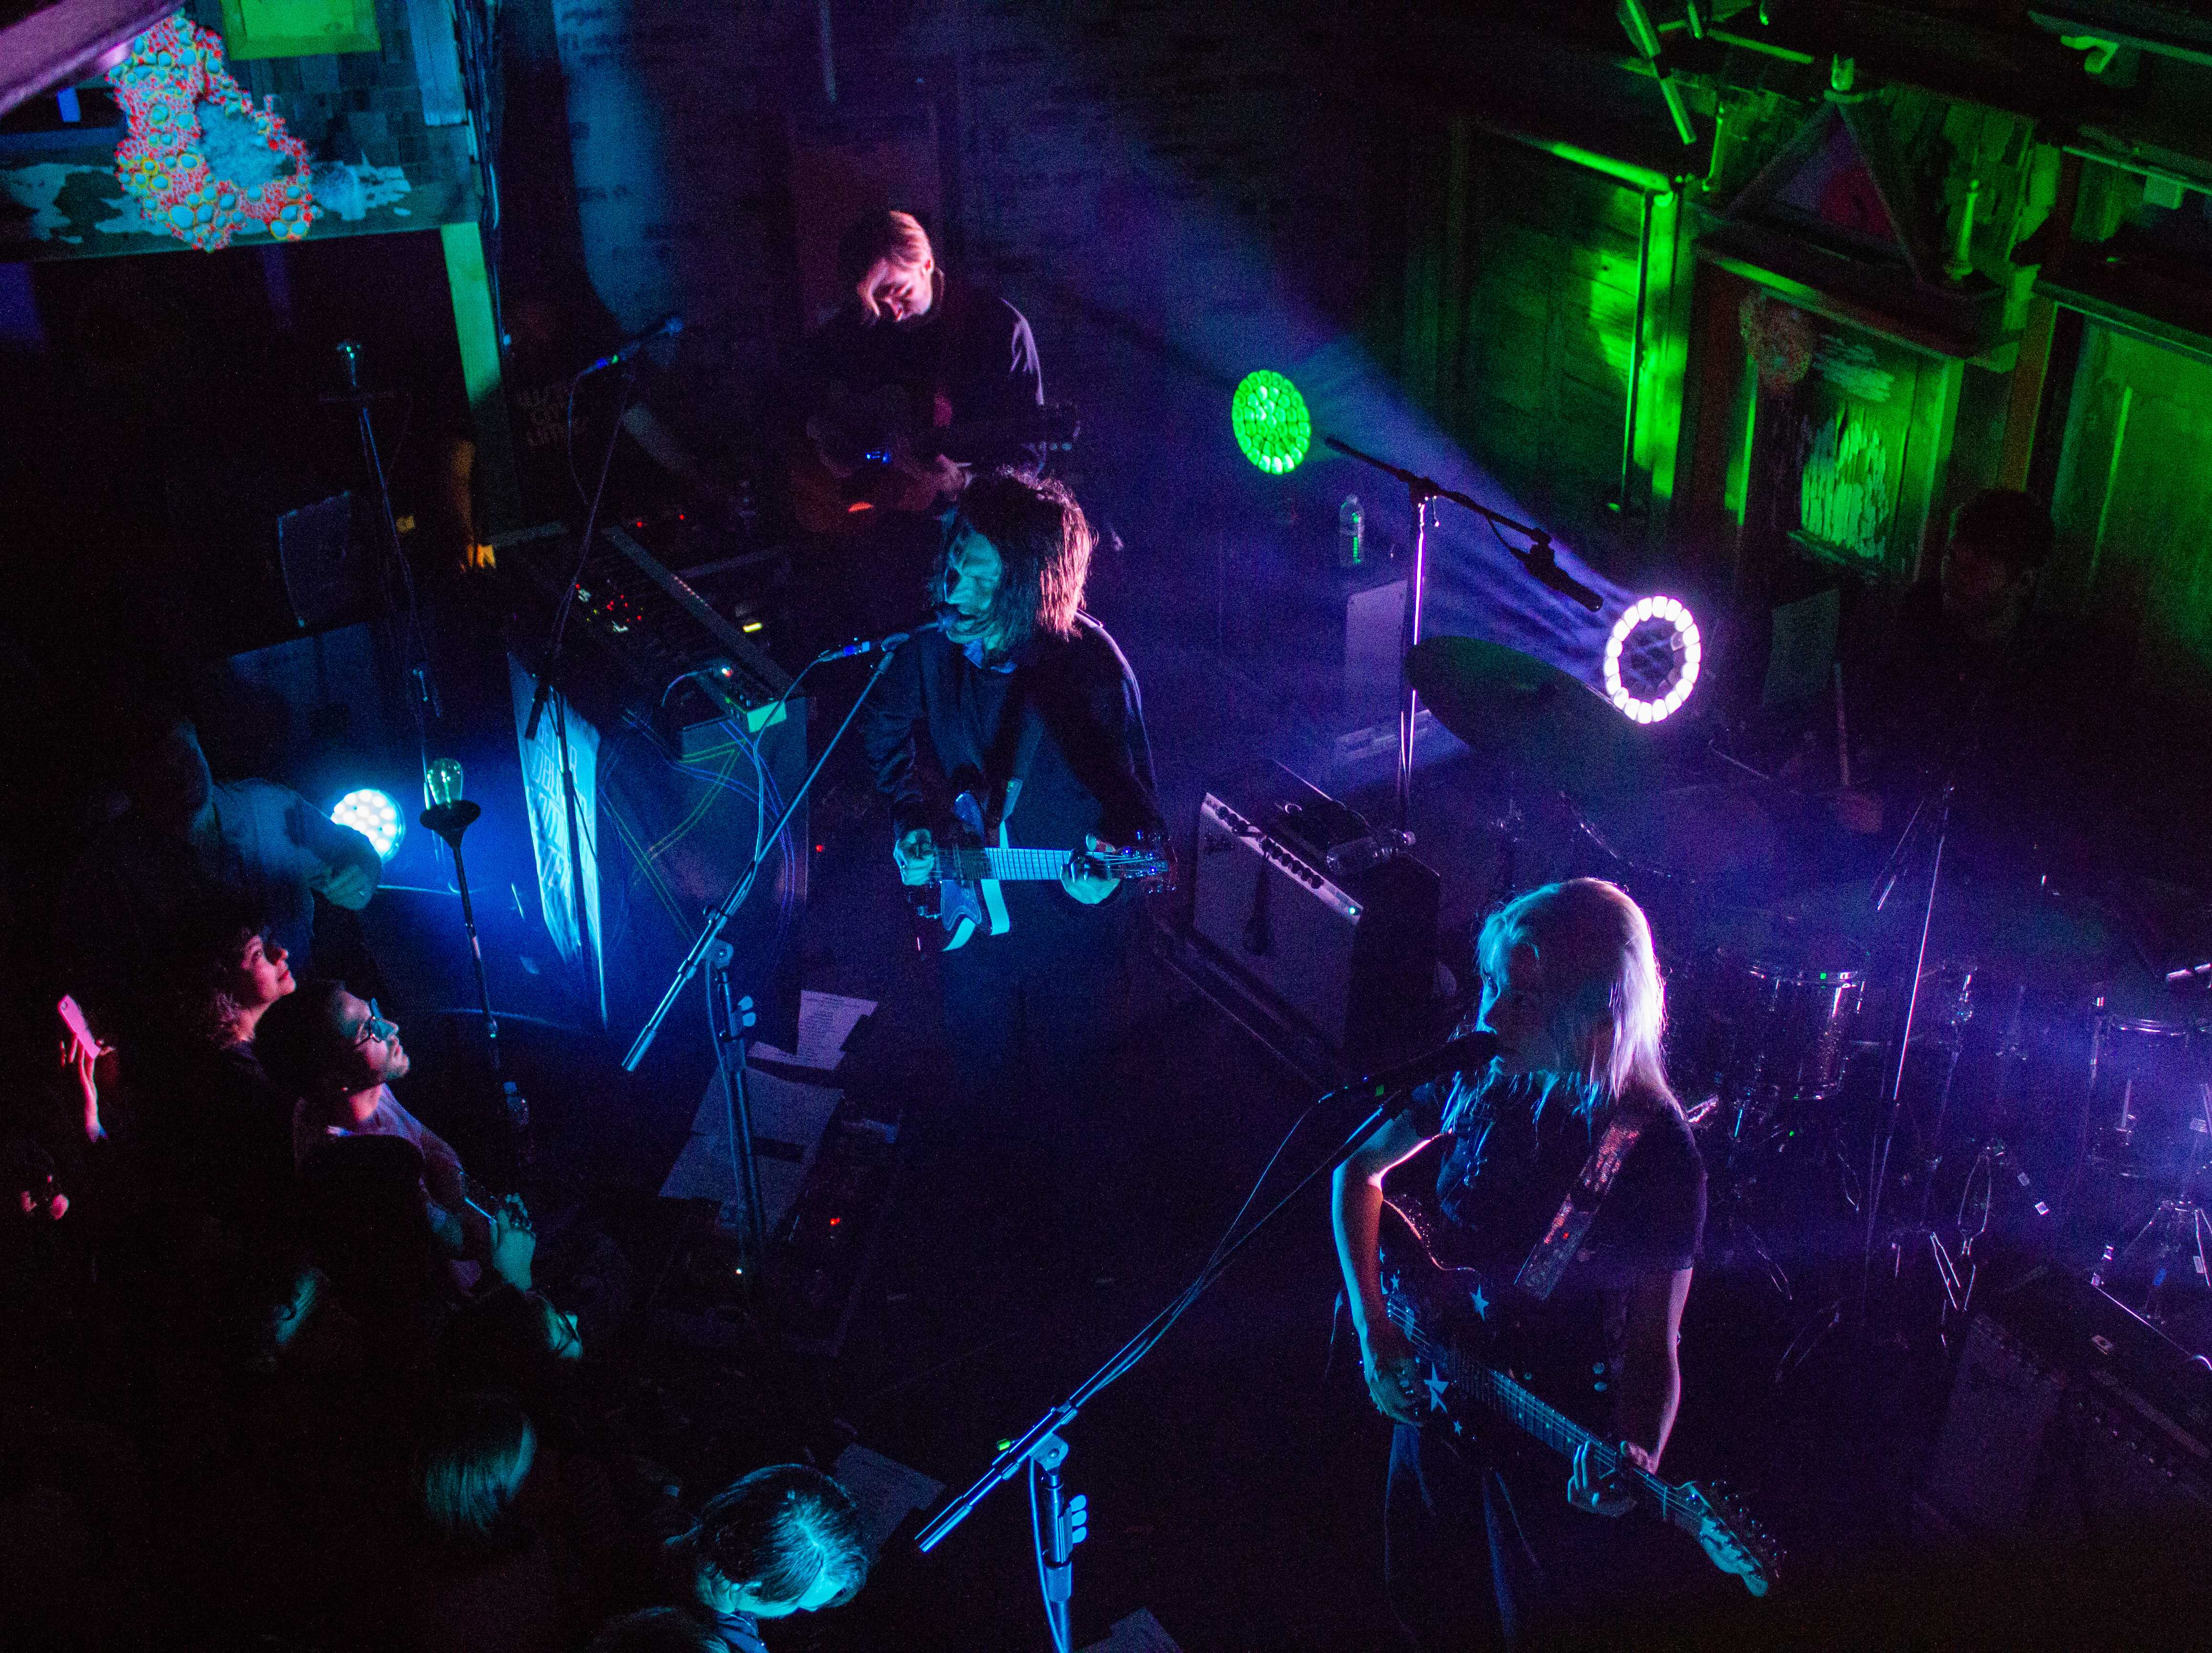 Better Oblivion Community Center at Meow Wolf